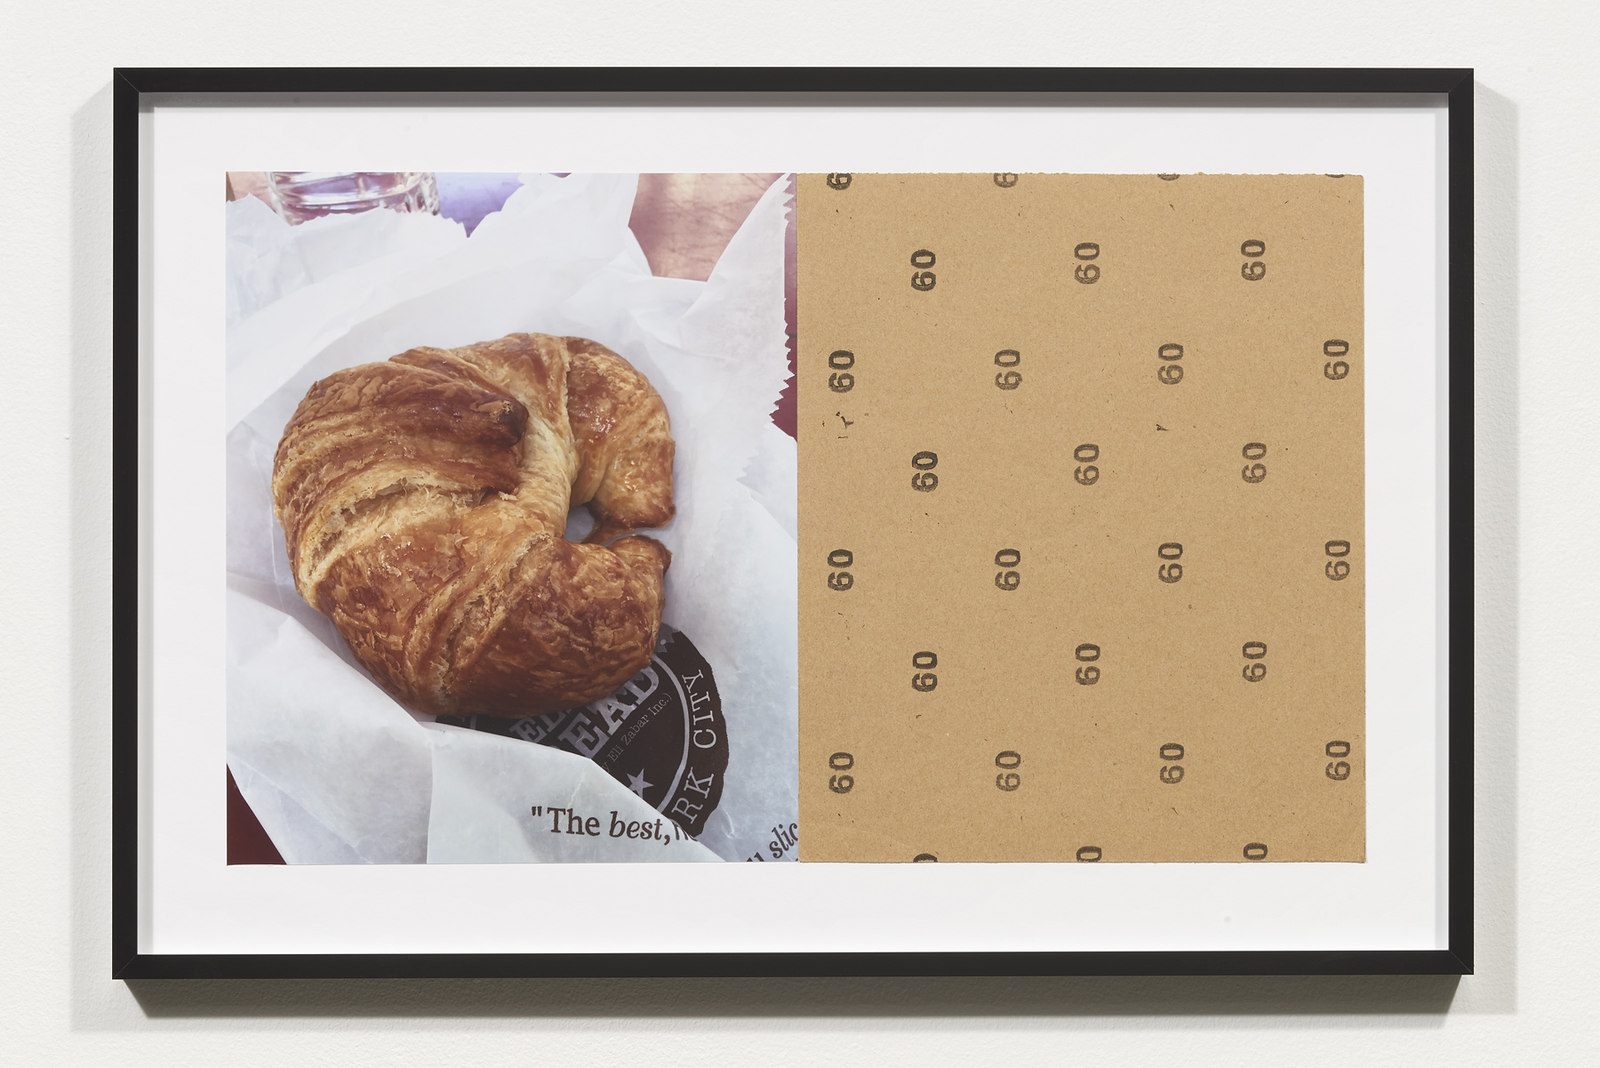 Wermers_Croissants & Architecture #6, 2016_C-print, sandpaper sheet, framed_14 3_8 x 21 1_2 in_NW00047PG